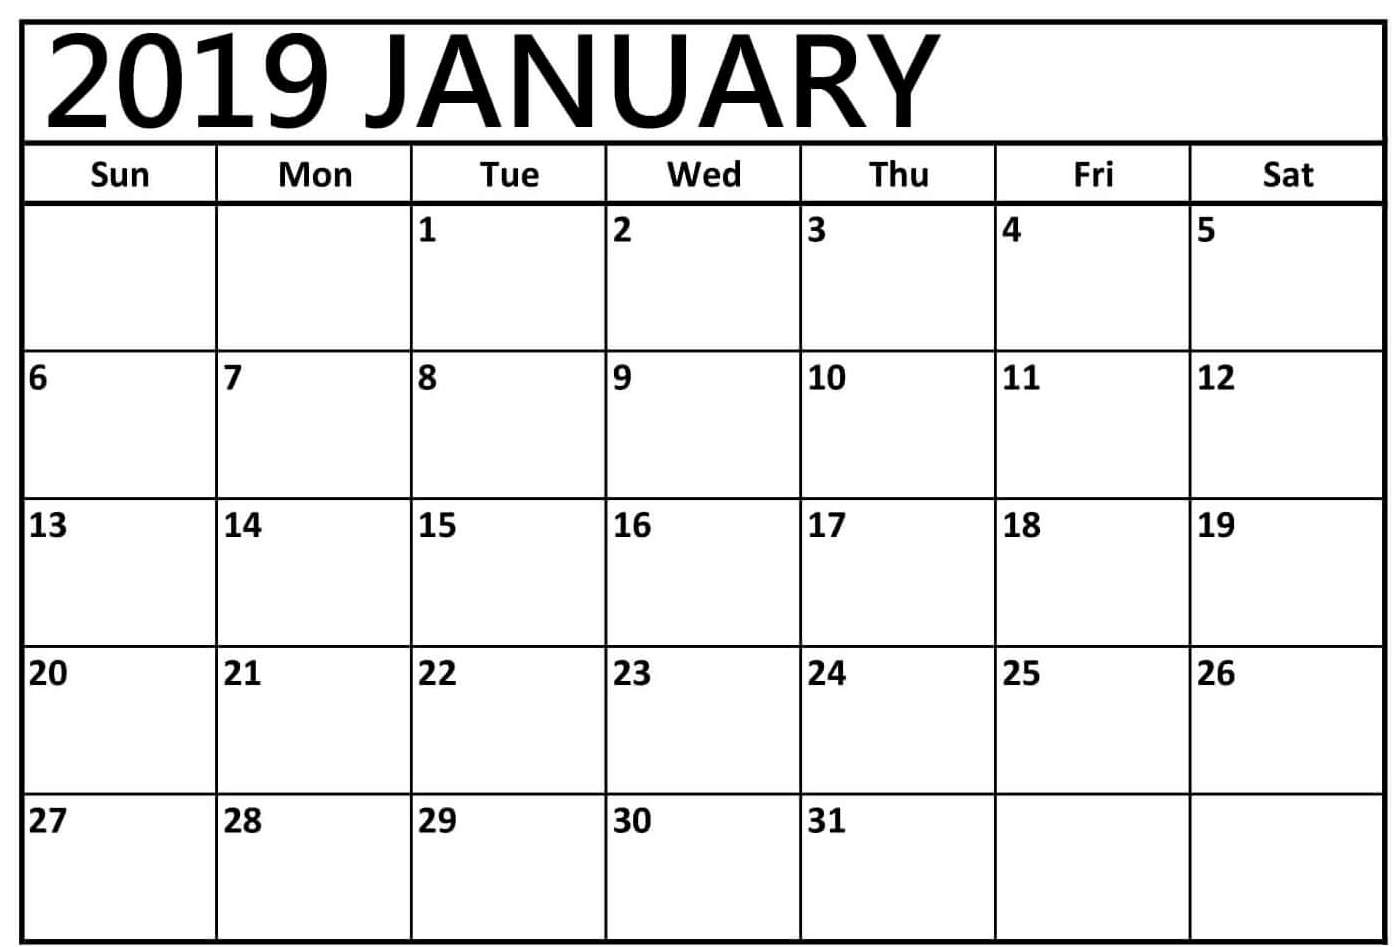 January 2019 Blank Calendar Download